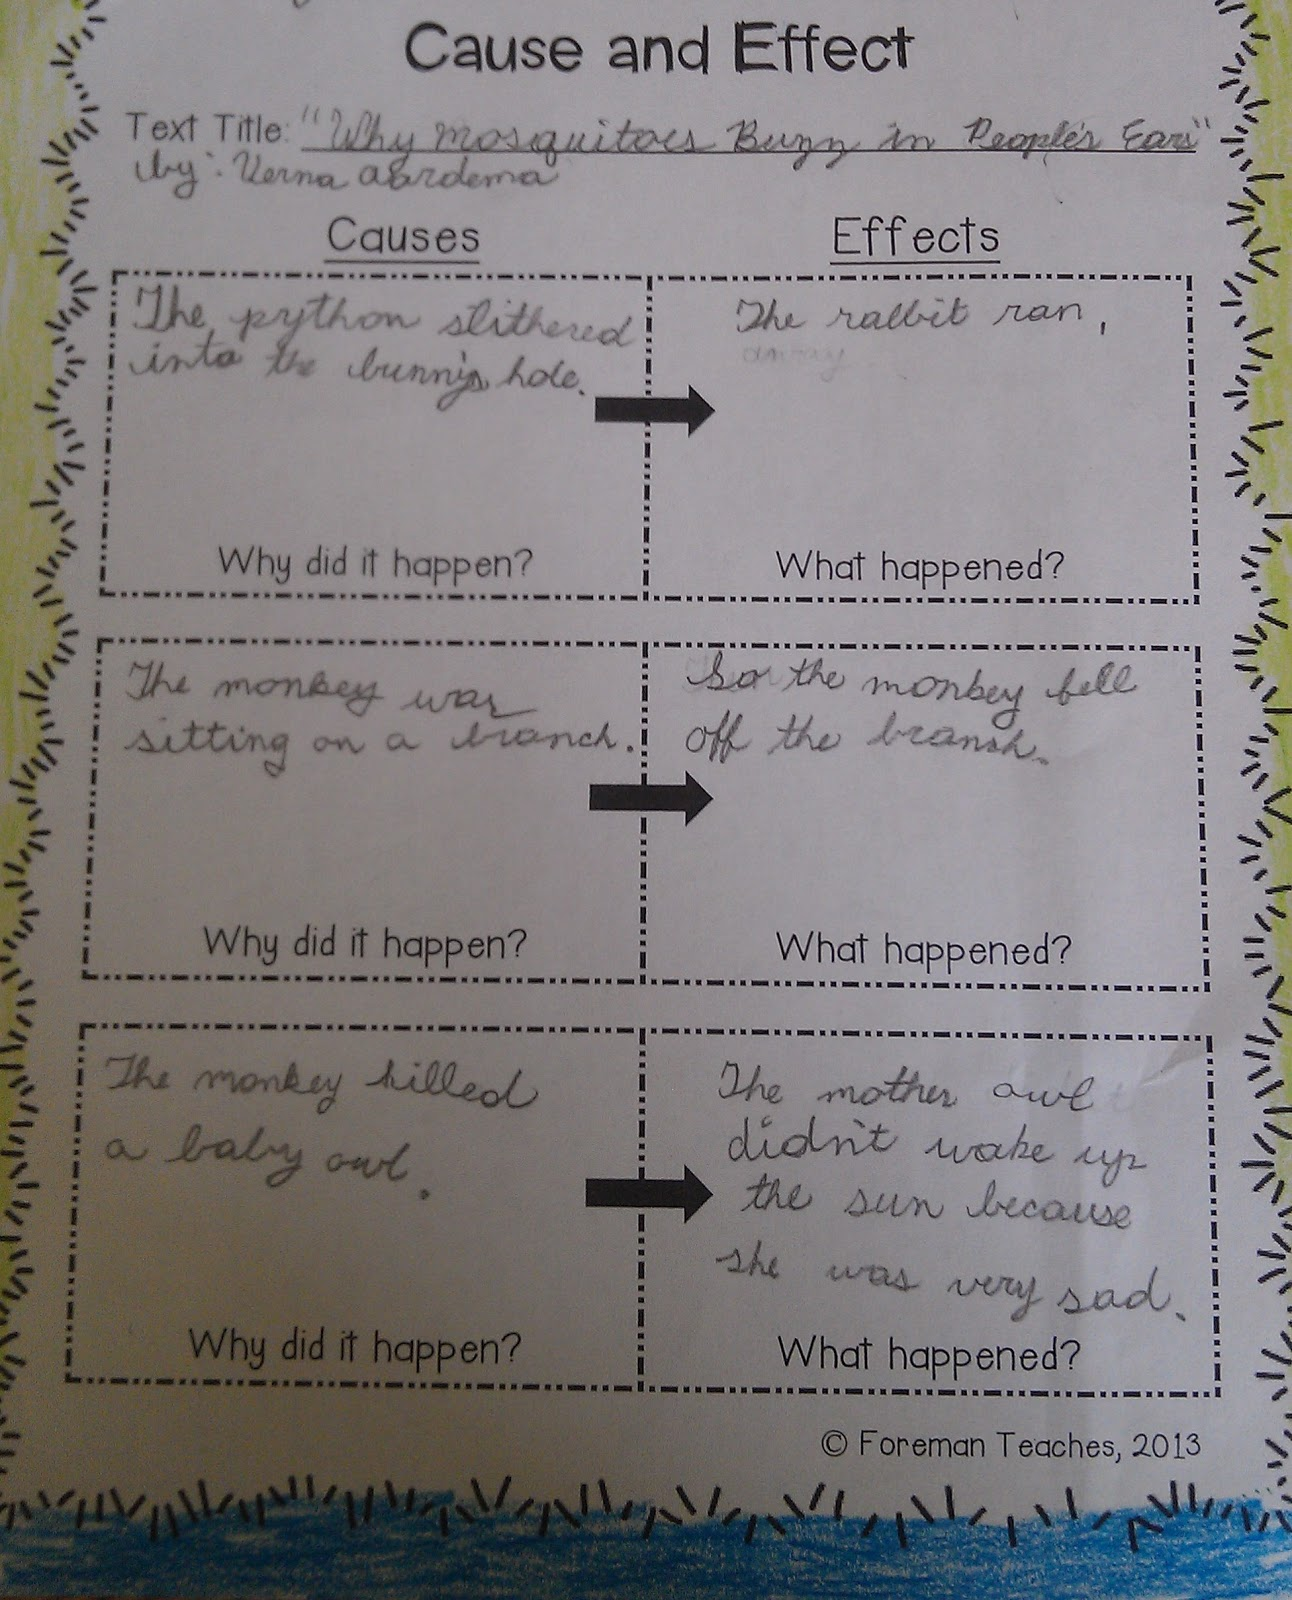 Cause and effect exercises for grade 10